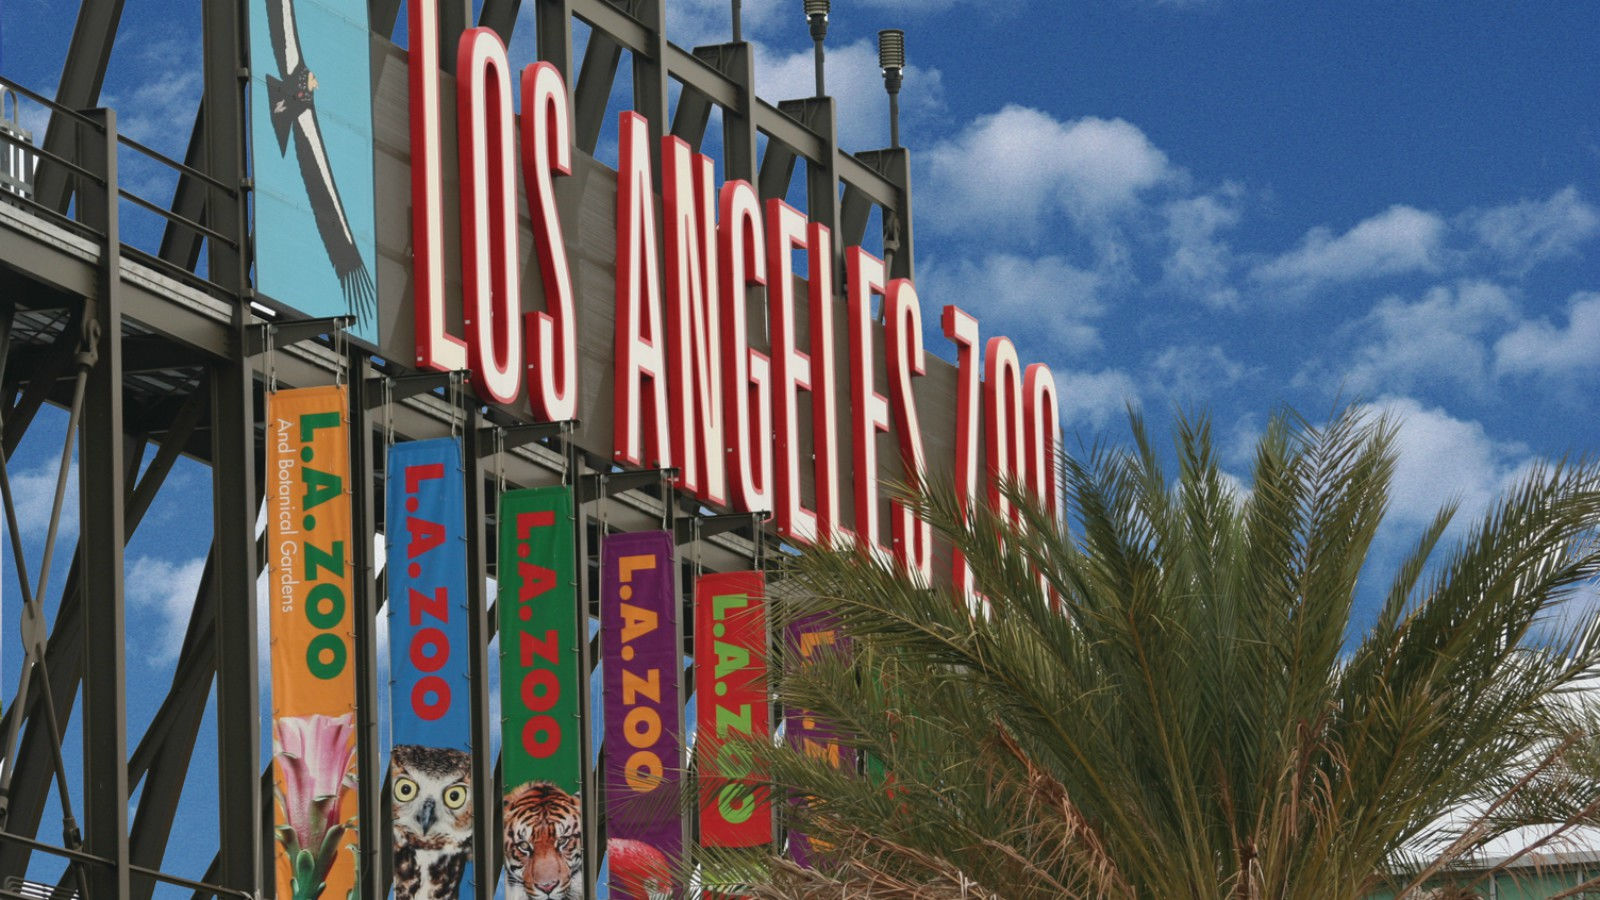 Things to Do in Los Angeles - Los Angeles Zoo